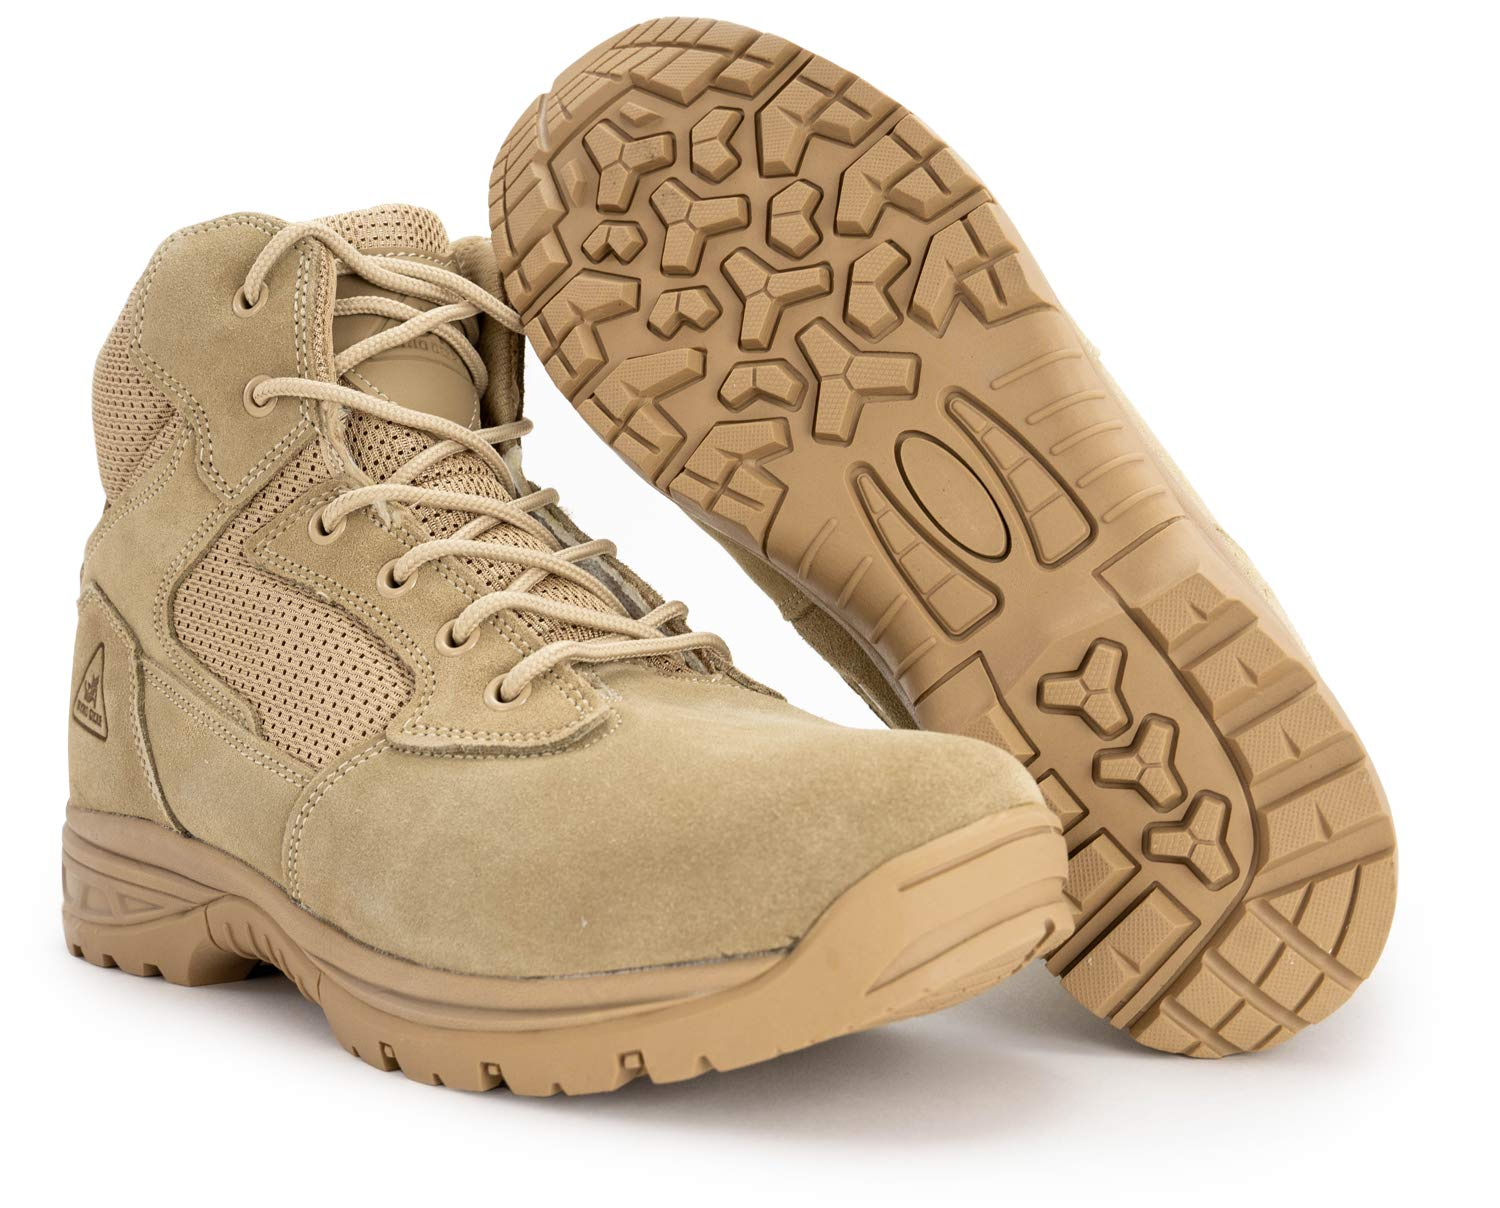 6'' Ryno Gear Tactical Combat Boots (Beige) (11) Wide by RYNO GEAR